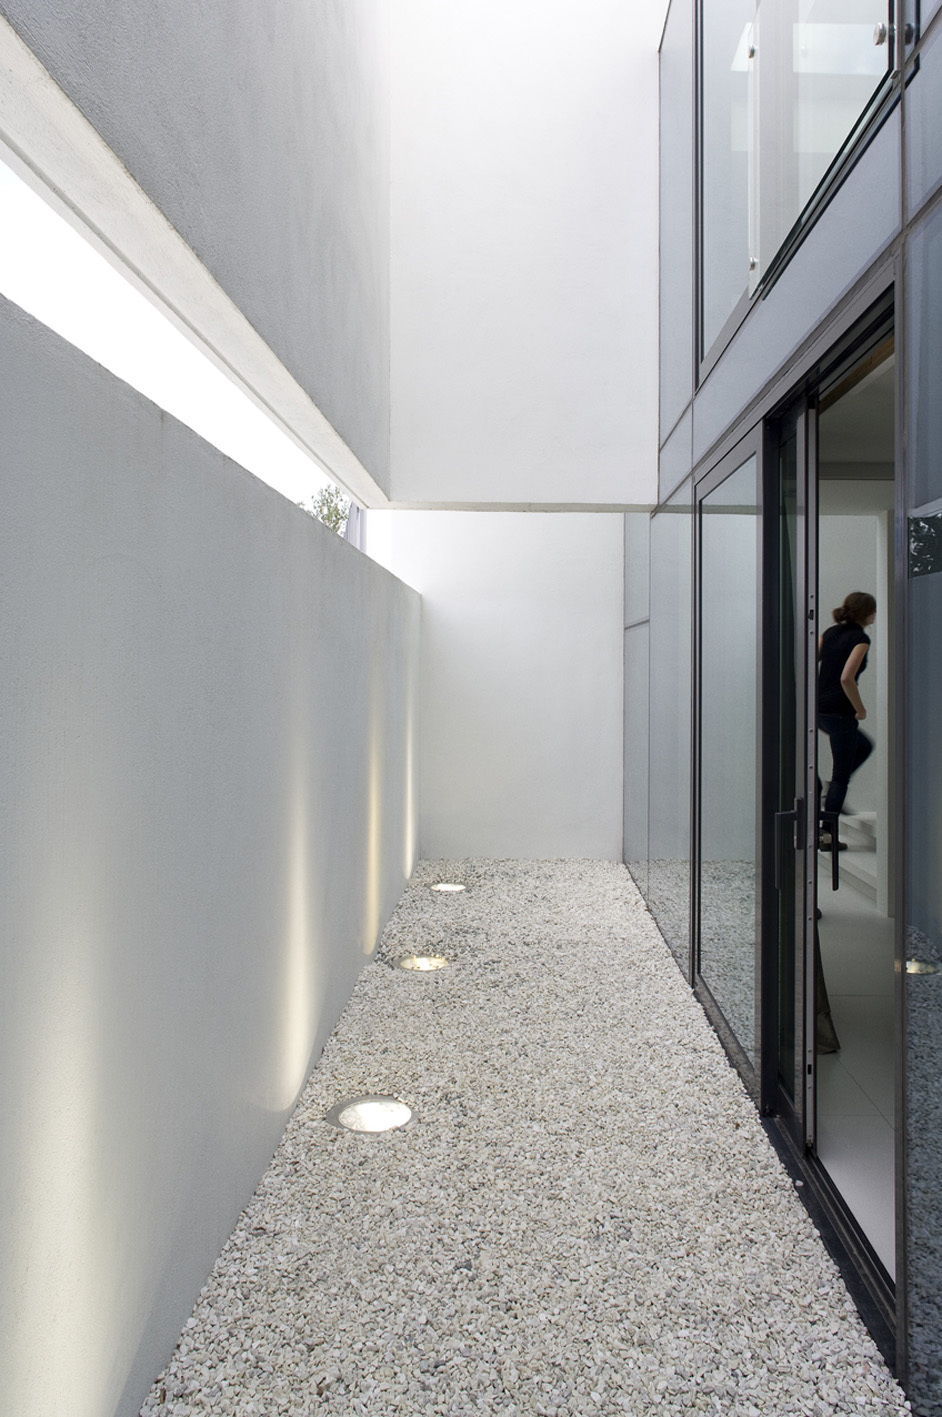 small courtyard Monolithic Mass Empowered by Simplicity - B25 House by PK Arkitektar homesthetics 1 (0)